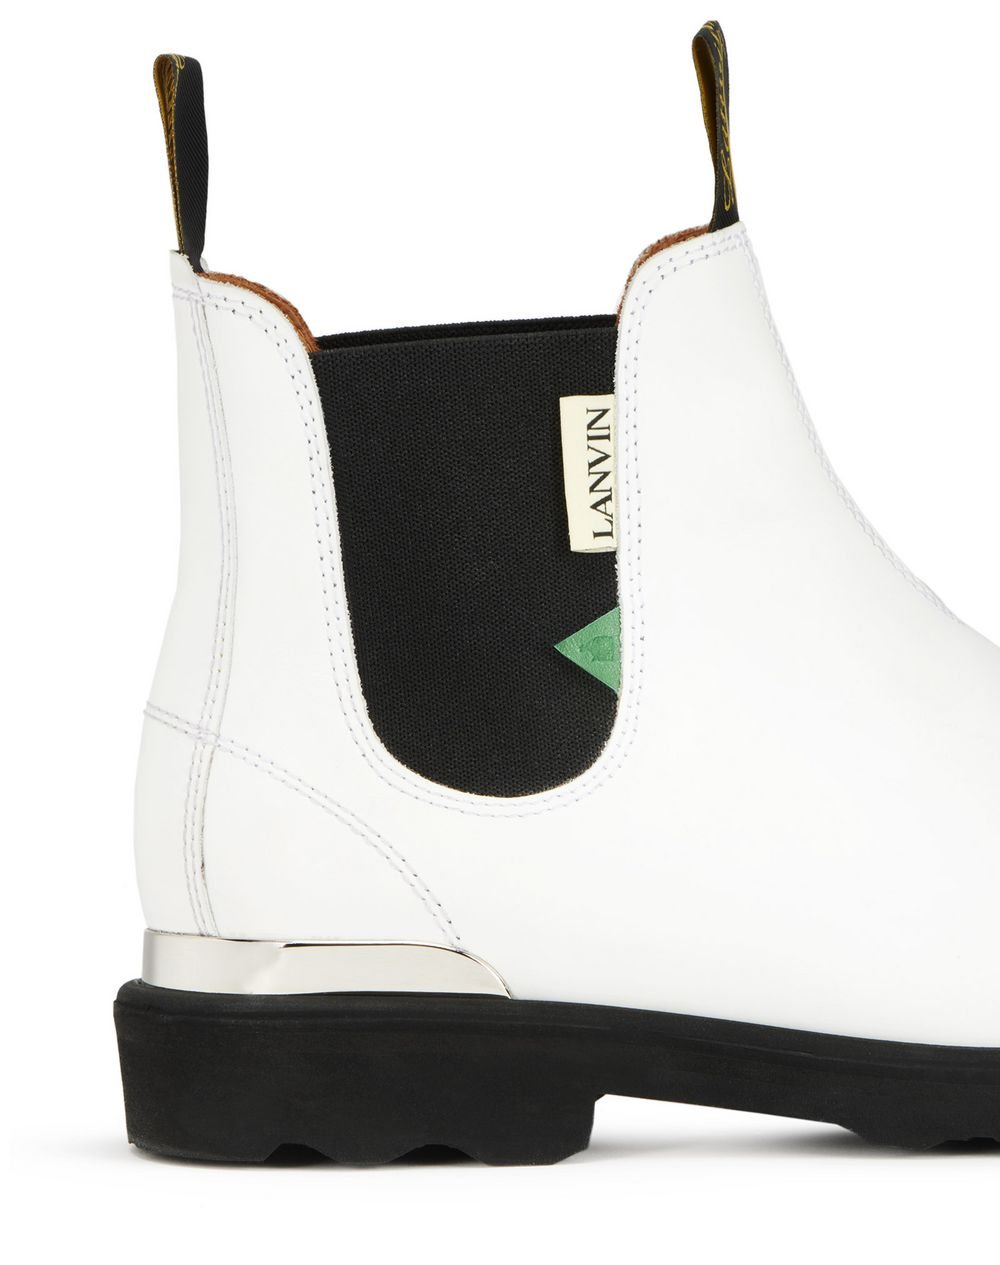 LEATHER CHELSEA ANKLE BOOT - Lanvin